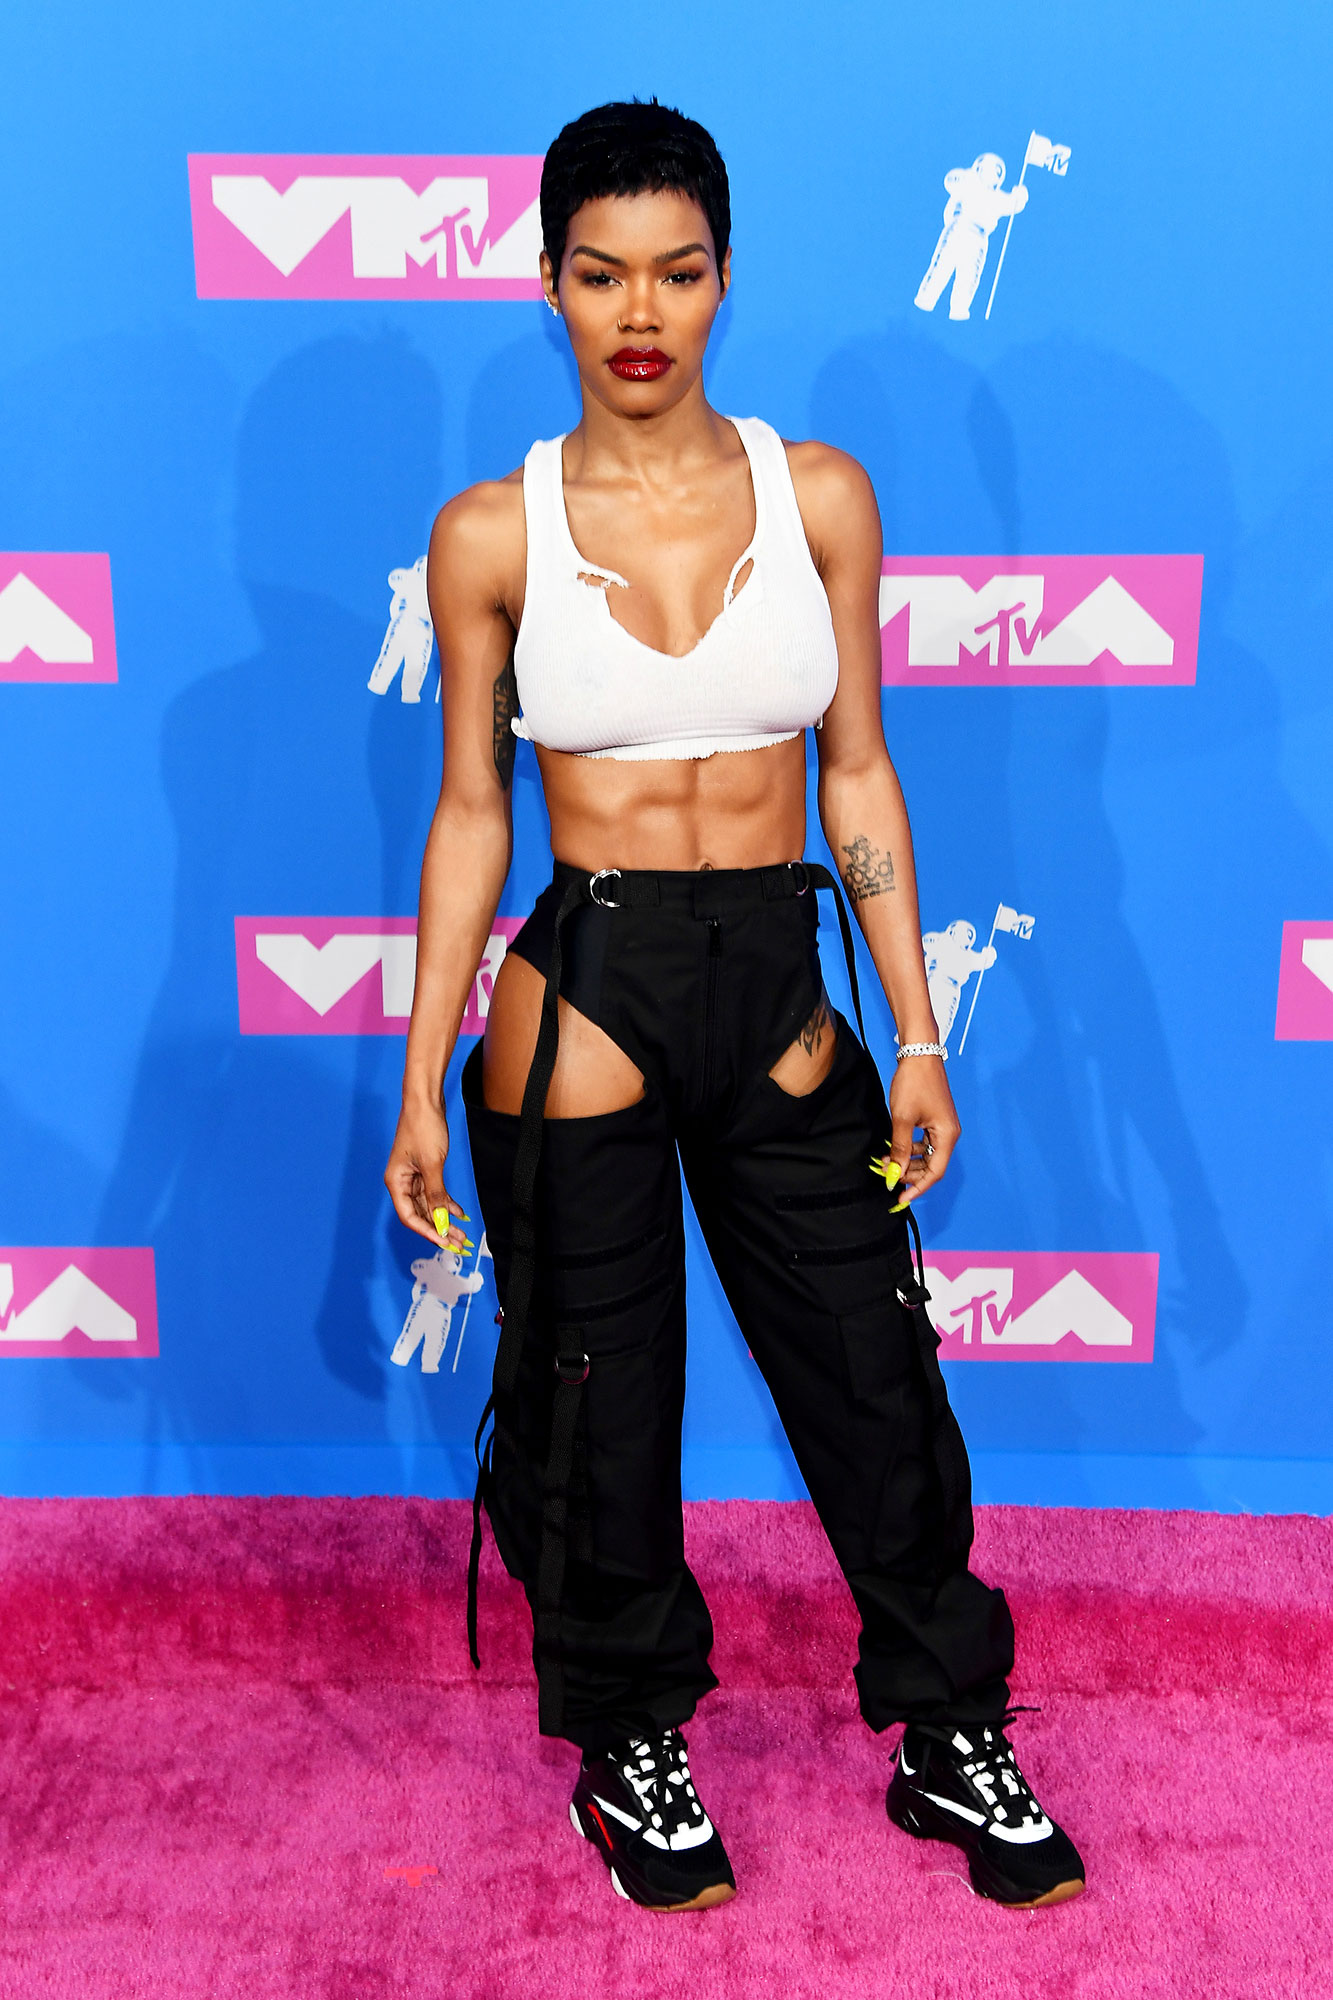 teyana taylor abs VMAs 2018 - Teyana Taylor attends the 2018 MTV Video Music Awards at Radio City Music Hall on August 20, 2018 in New York City. (Photo by Nicholas Hunt/Getty Images for MTV)